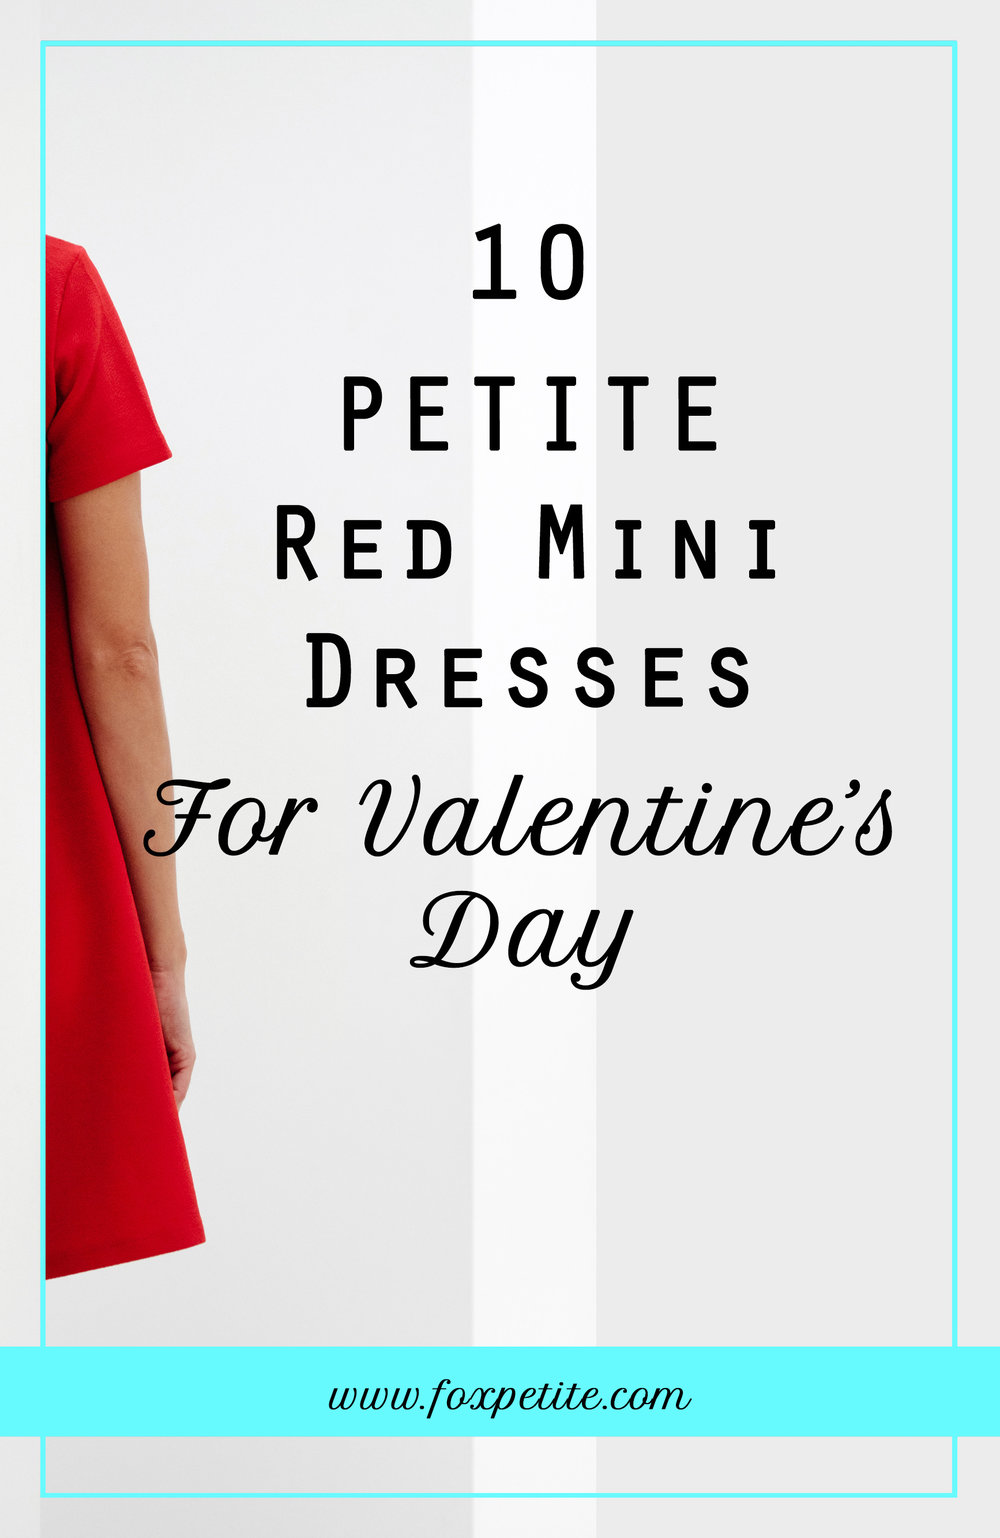 10 Petite Red Mini Dresses for Valentine's Day | blogger Fox Petite shares 10 dresses in petite sizes to get prepared for the February holiday | petite style and fashion tips blog | what to wear on Valentine's Day if you are petite